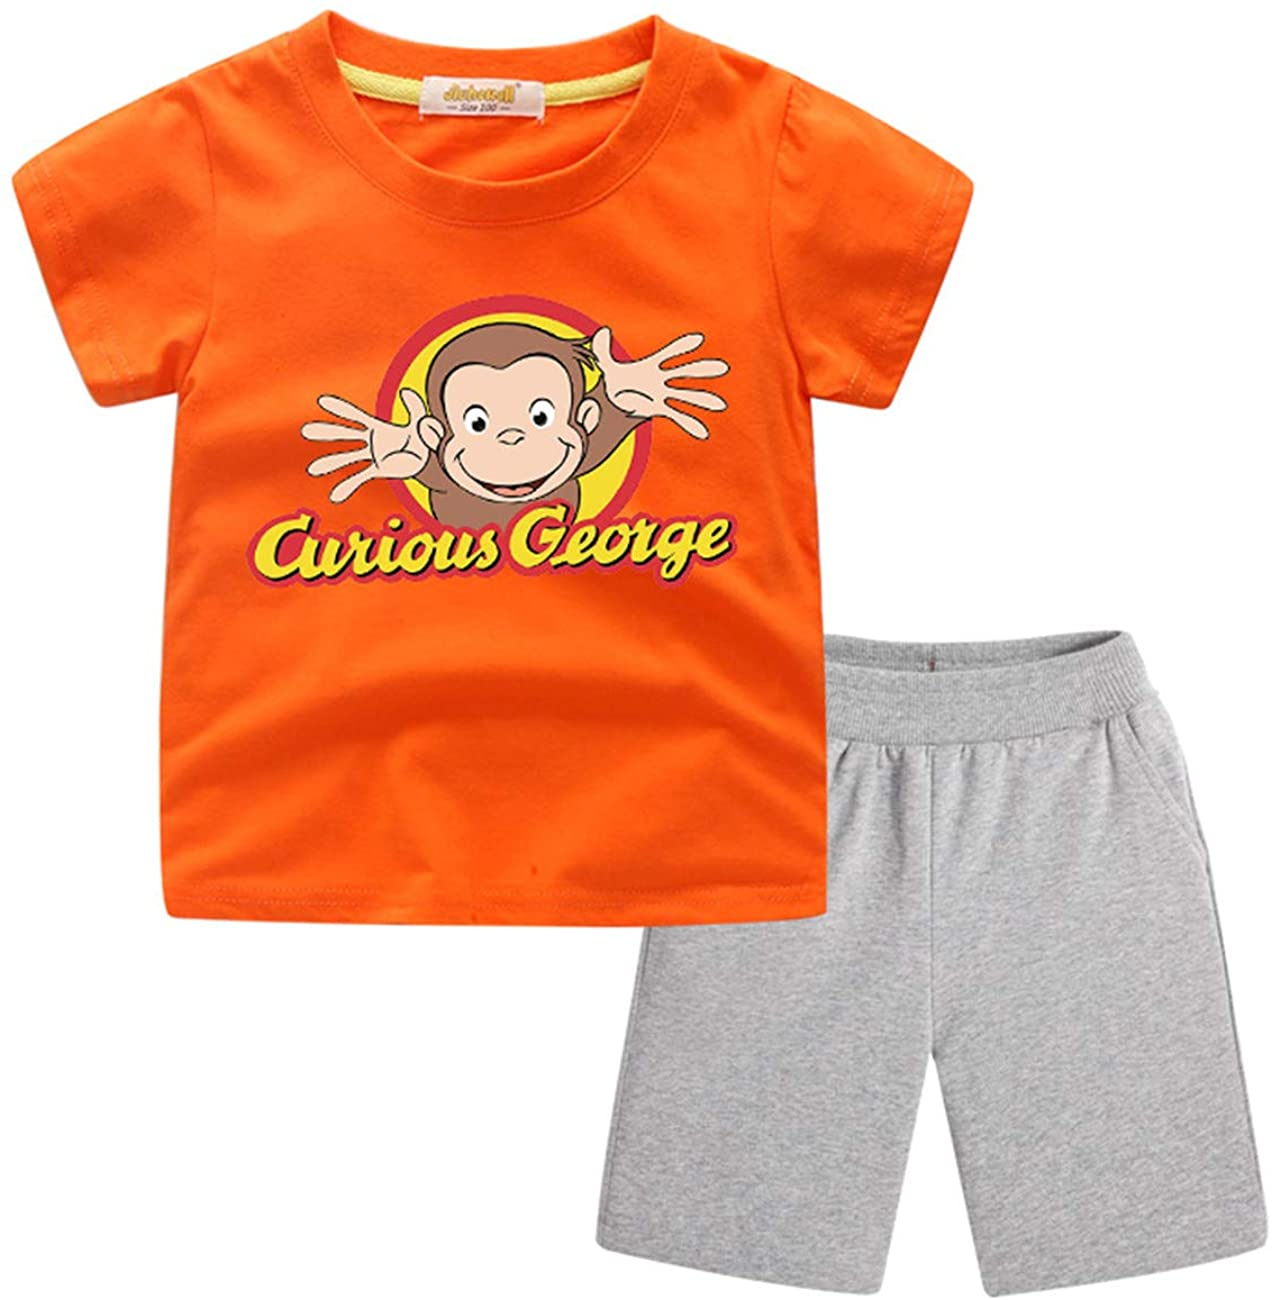 GD-fashion Curious George Short Clothes-Boys Girls Summer Tshirts Soft Cotton Tees and Shorts